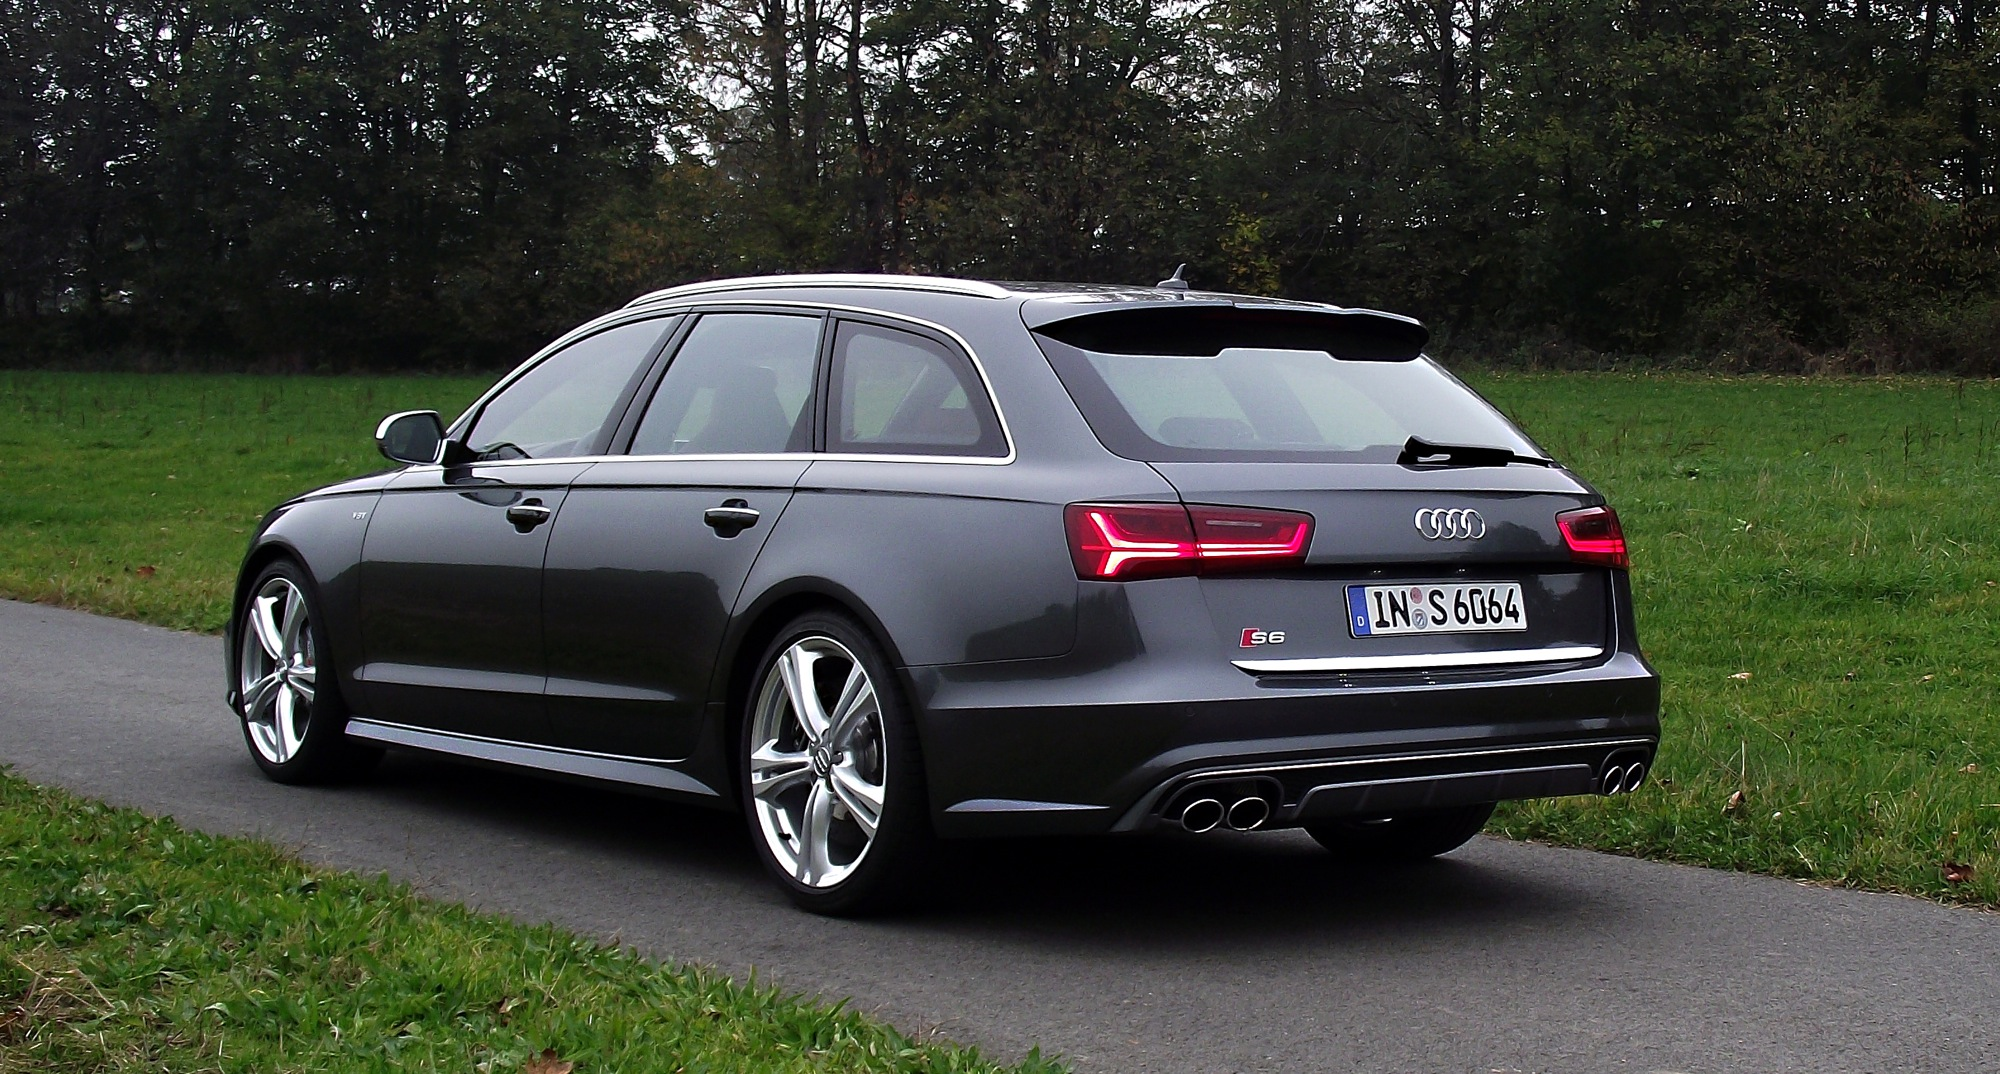 file 2014 audi s6 avant c7 typ 4g v8 4 0 tfsi quattro. Black Bedroom Furniture Sets. Home Design Ideas